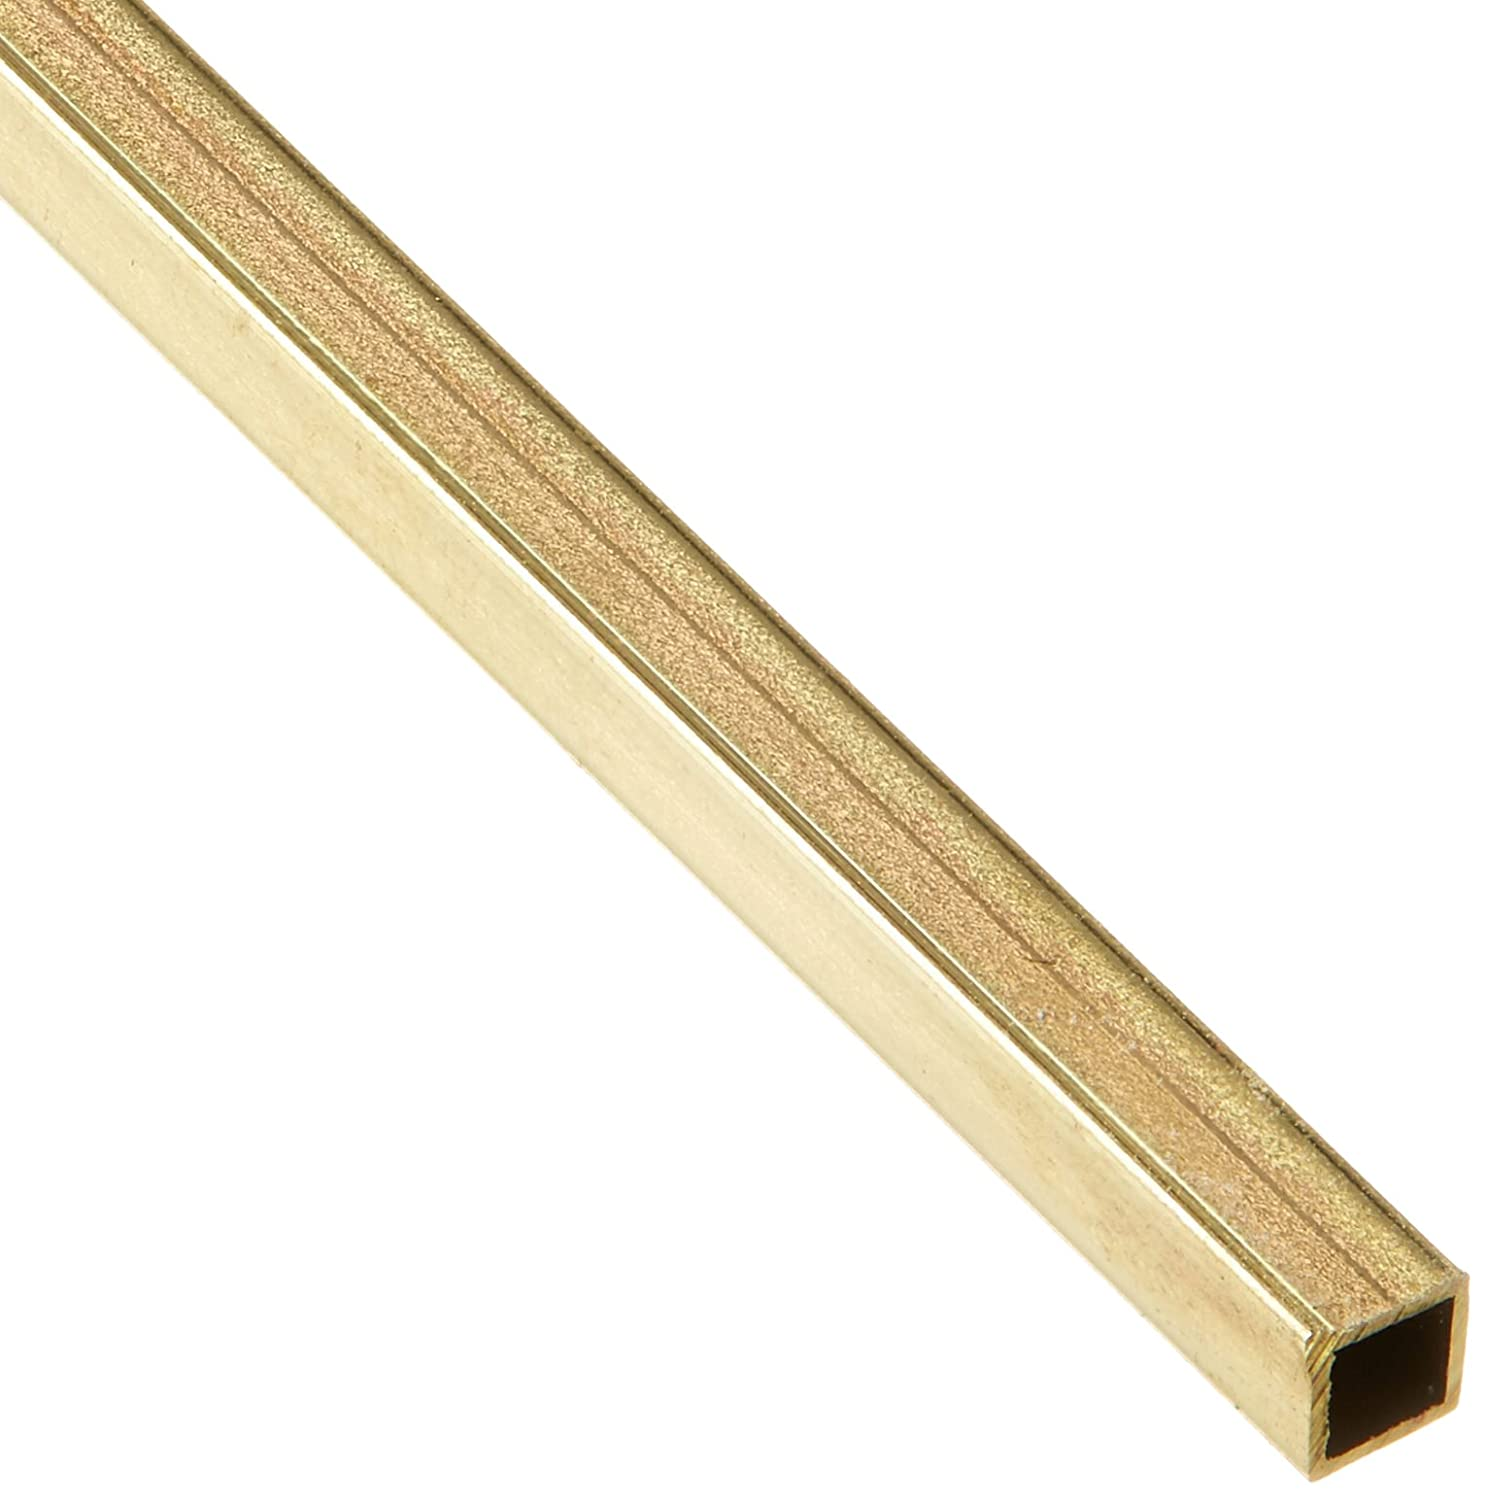 K&S Precision Metals 8151 Square Brass Tube, 1/8' OD x 0.014 Wall Thickness x 12' Length, 0.125 inch outside diameter, 1 pcs per car, Made in USA 1/8 OD x 0.014 Wall Thickness x 12 Length K & S PRECISION METALS